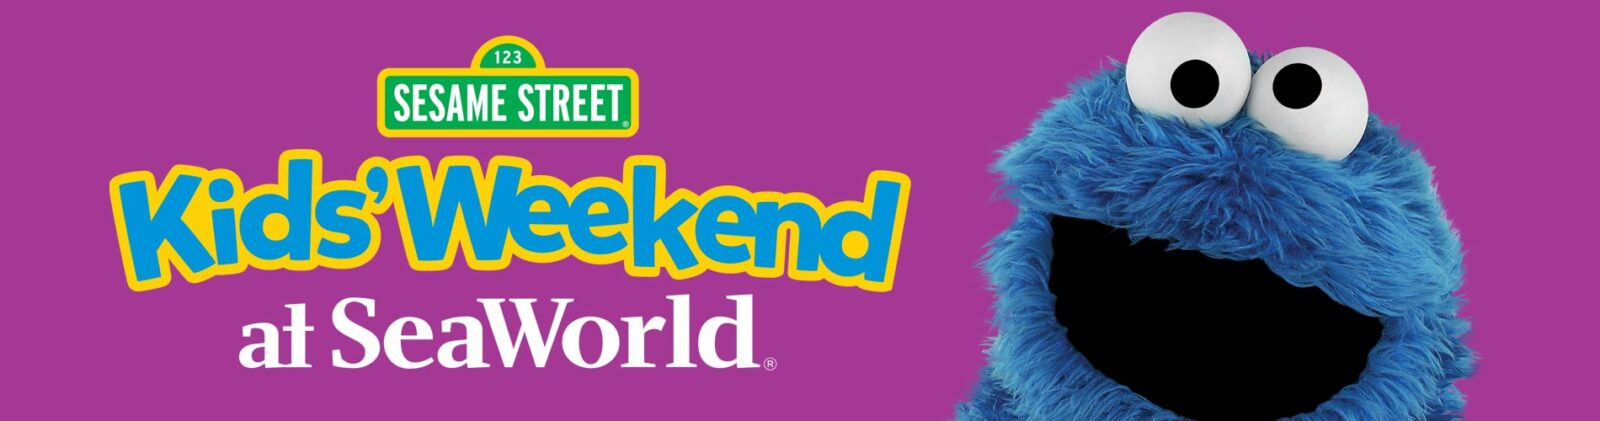 Sesame Street Weekend 2021 SeaWorld Orlando